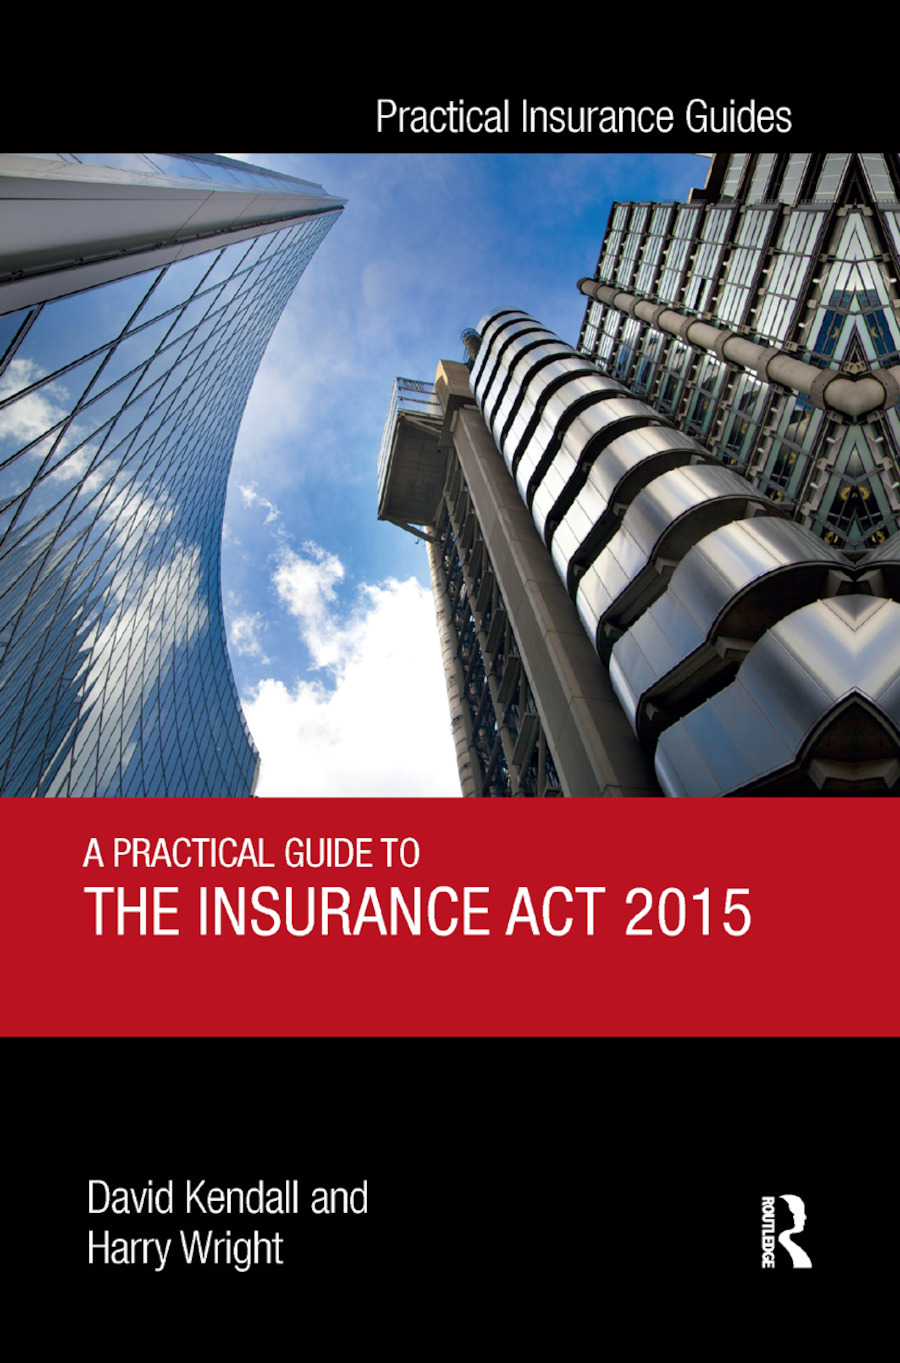 A Practical Guide to the Insurance Act 2015 book cover